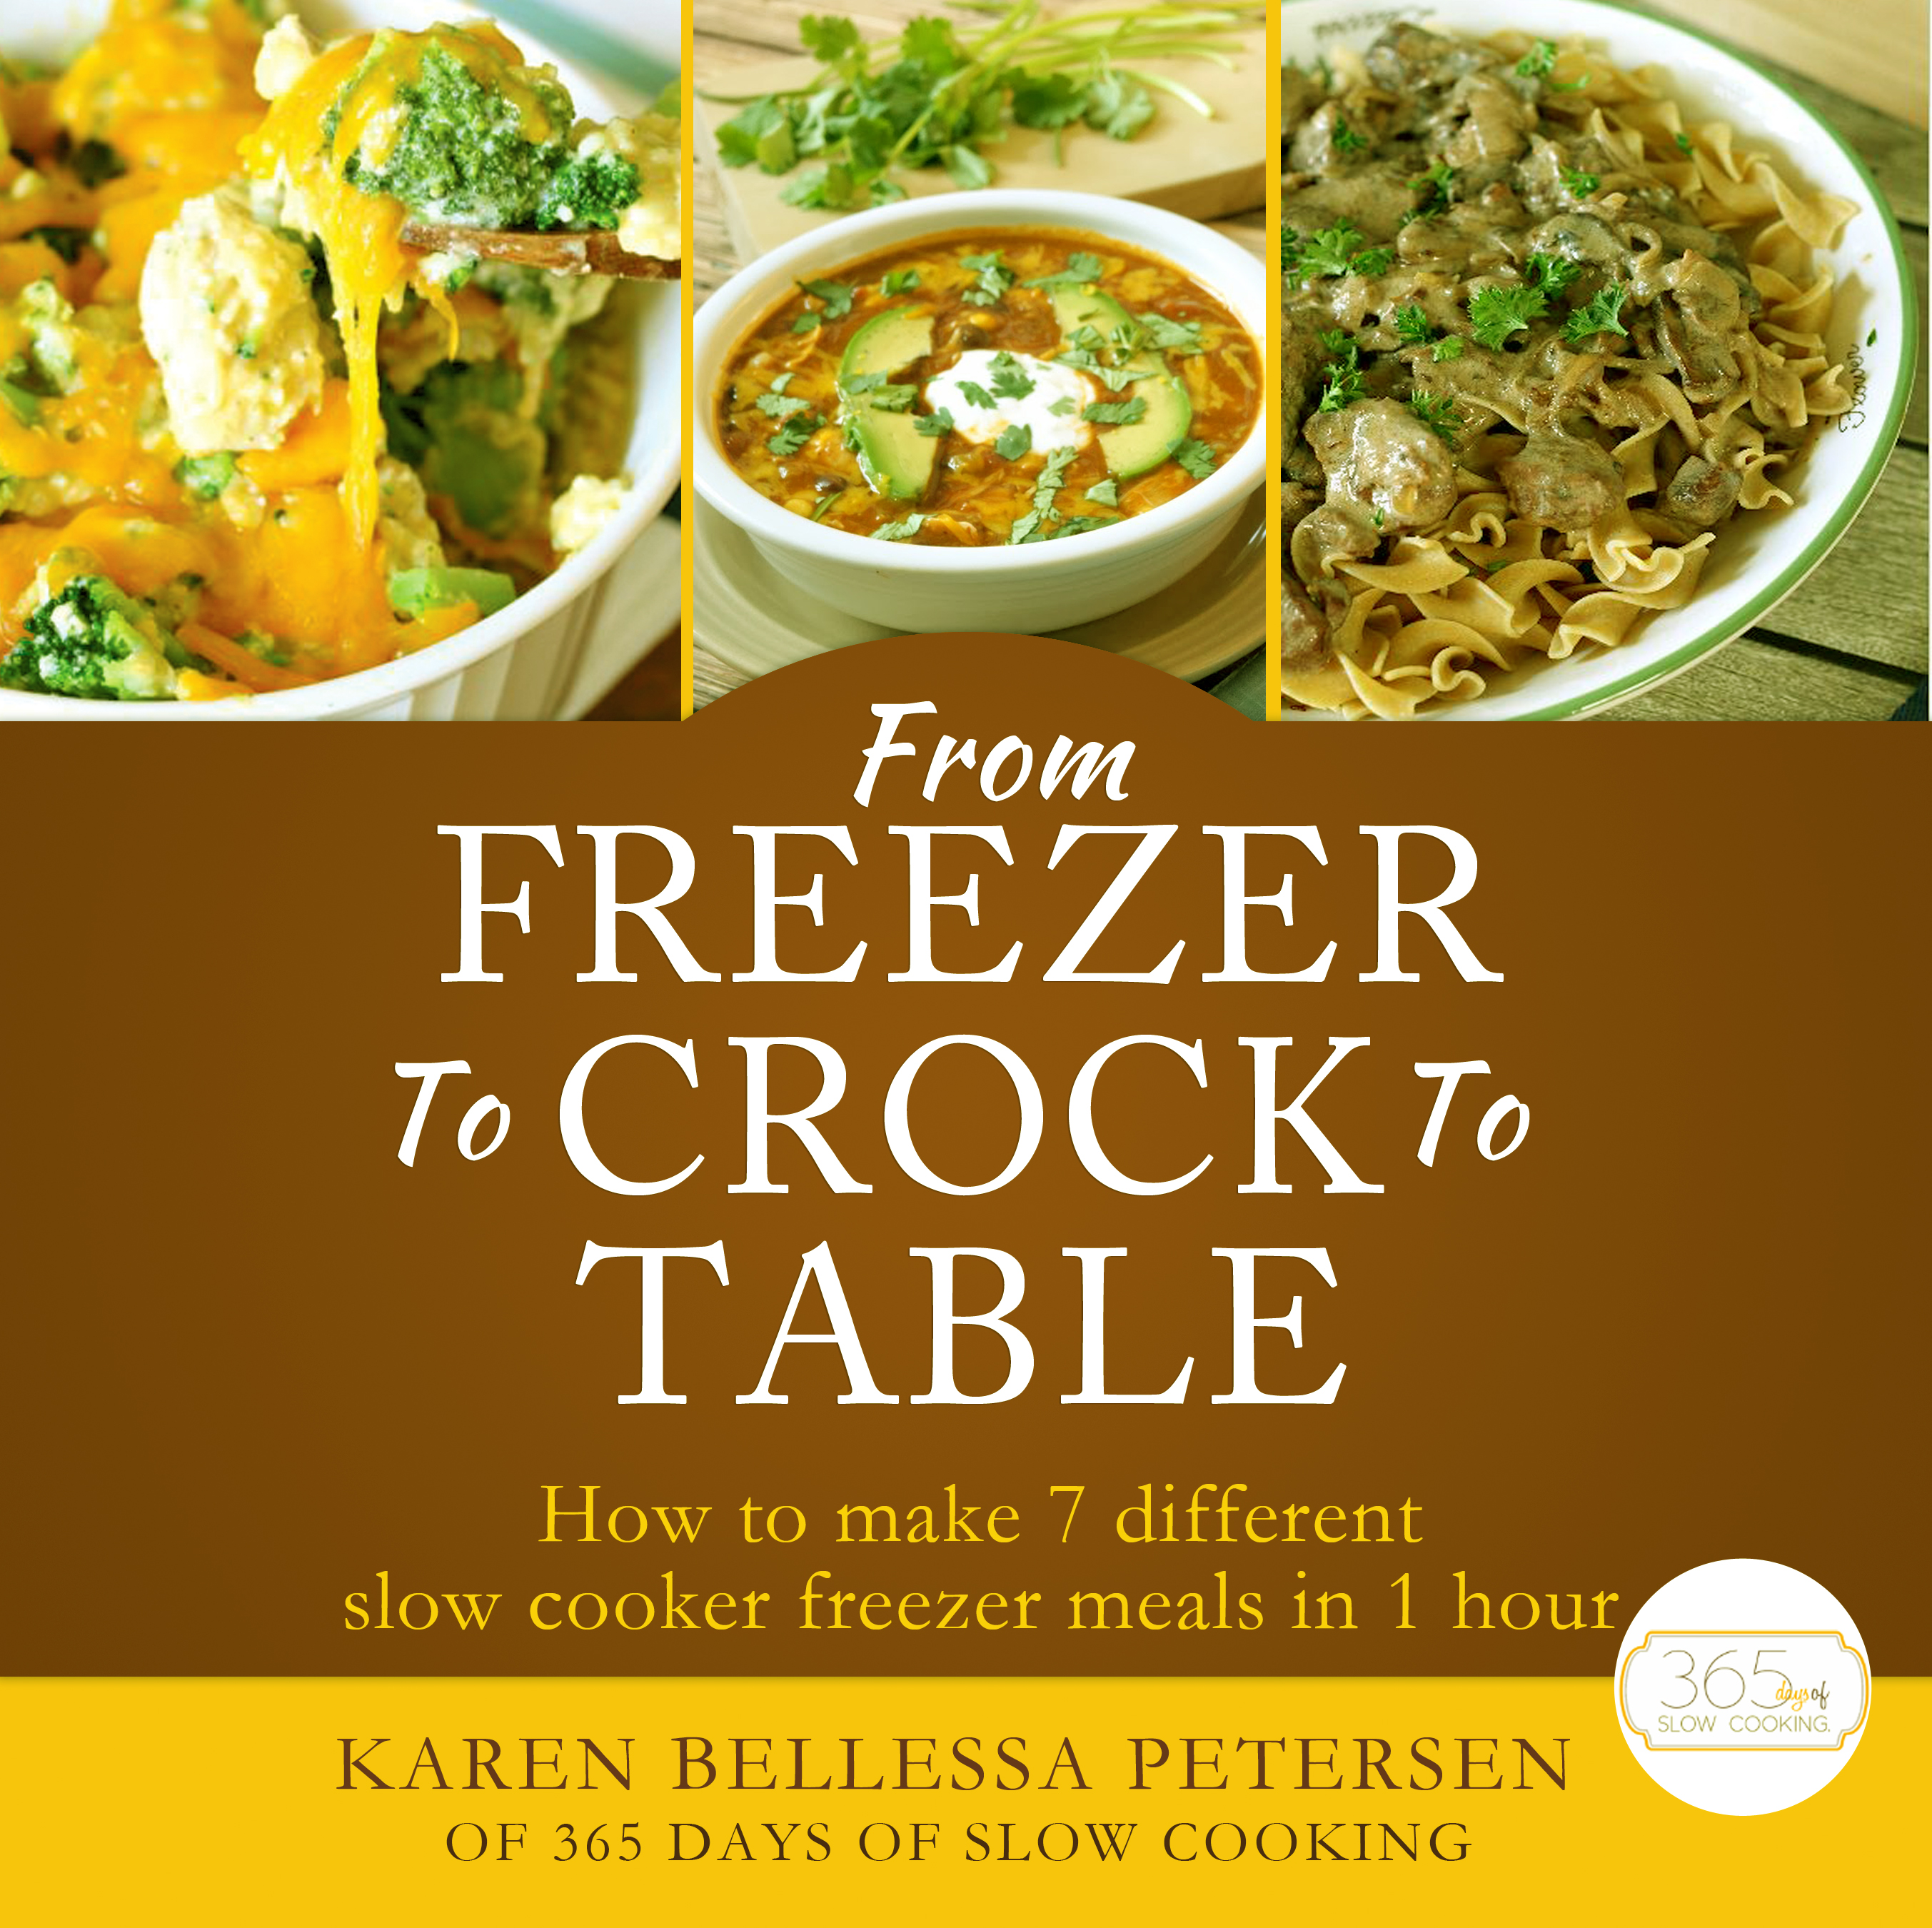 From_Freezer_to_Crock_to_Table2